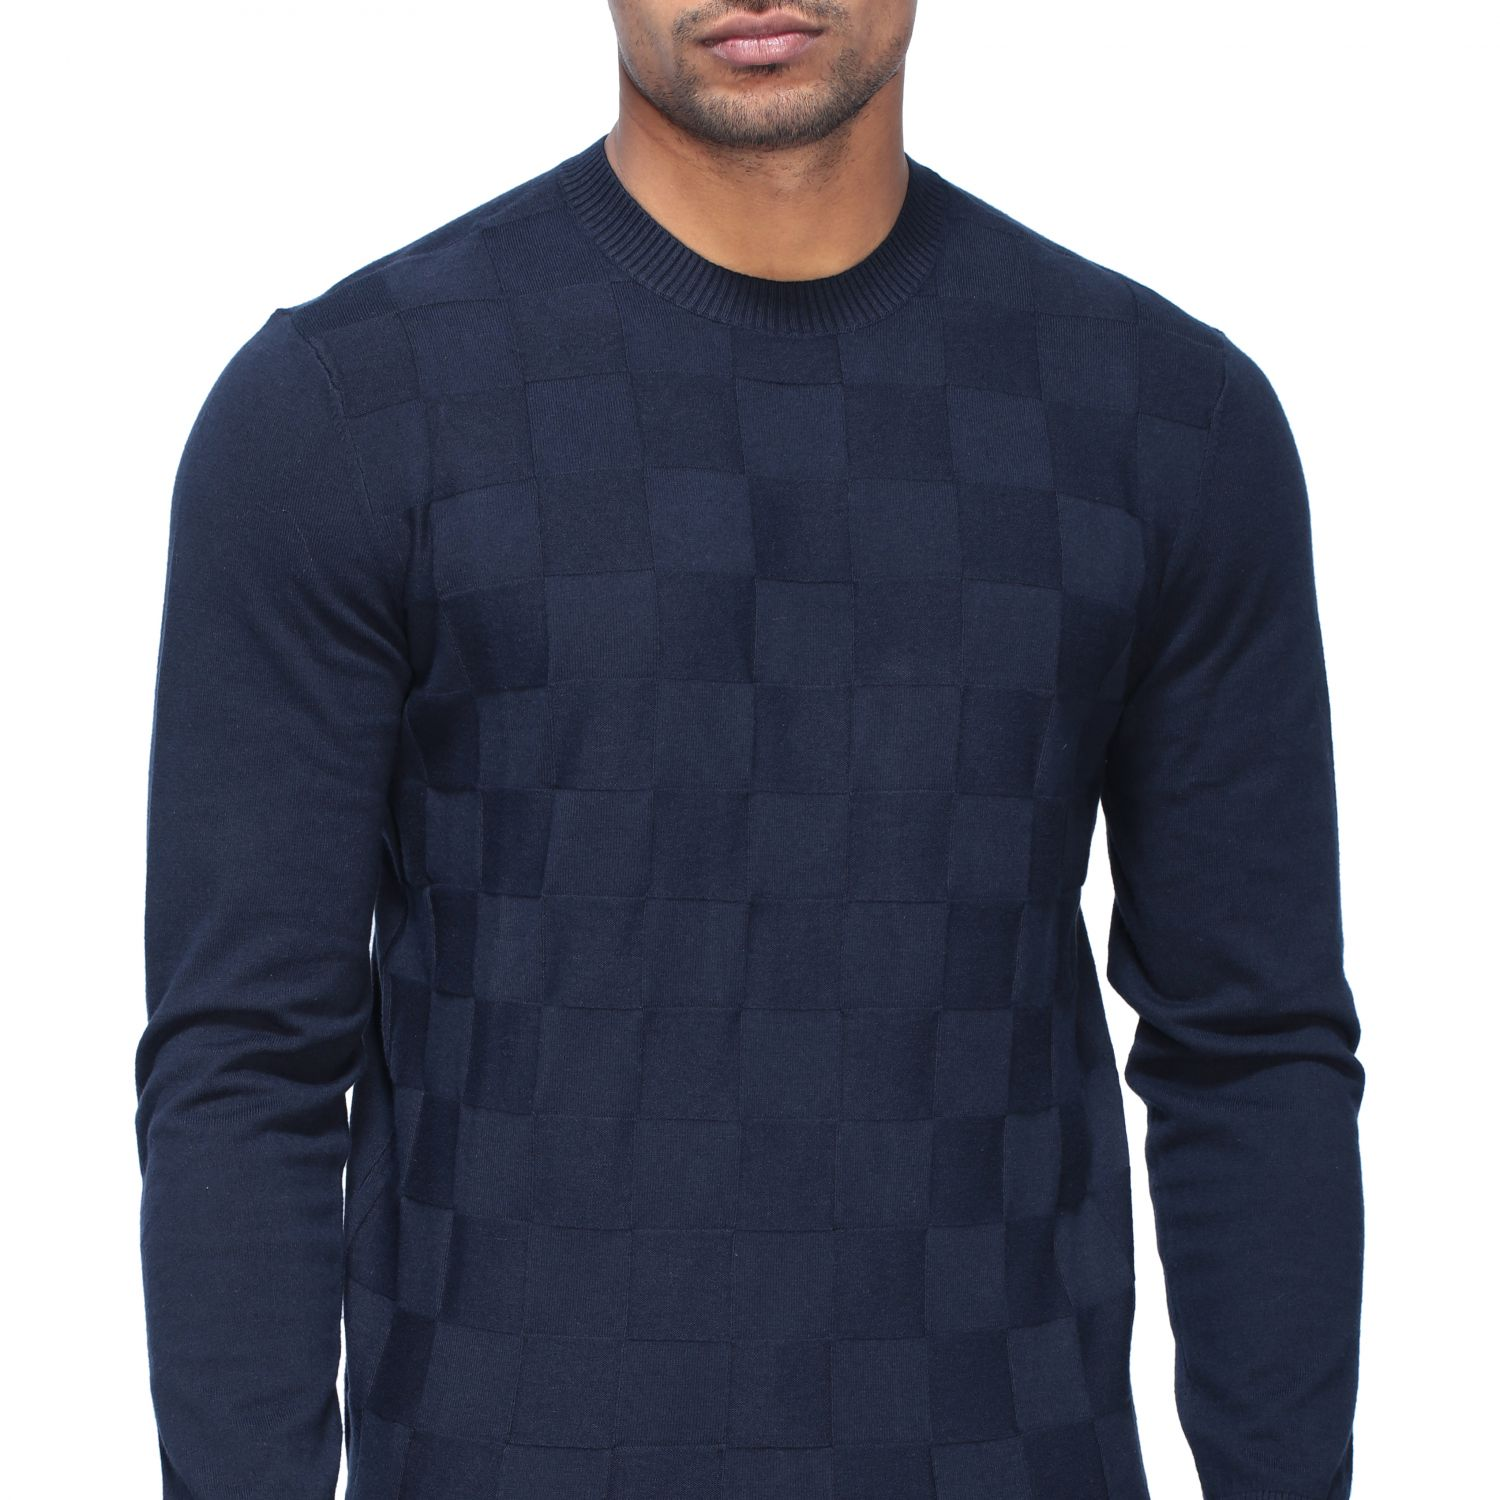 Sweater Armani Exchange: Armani Exchange crew neck sweater with checked pattern blue 5